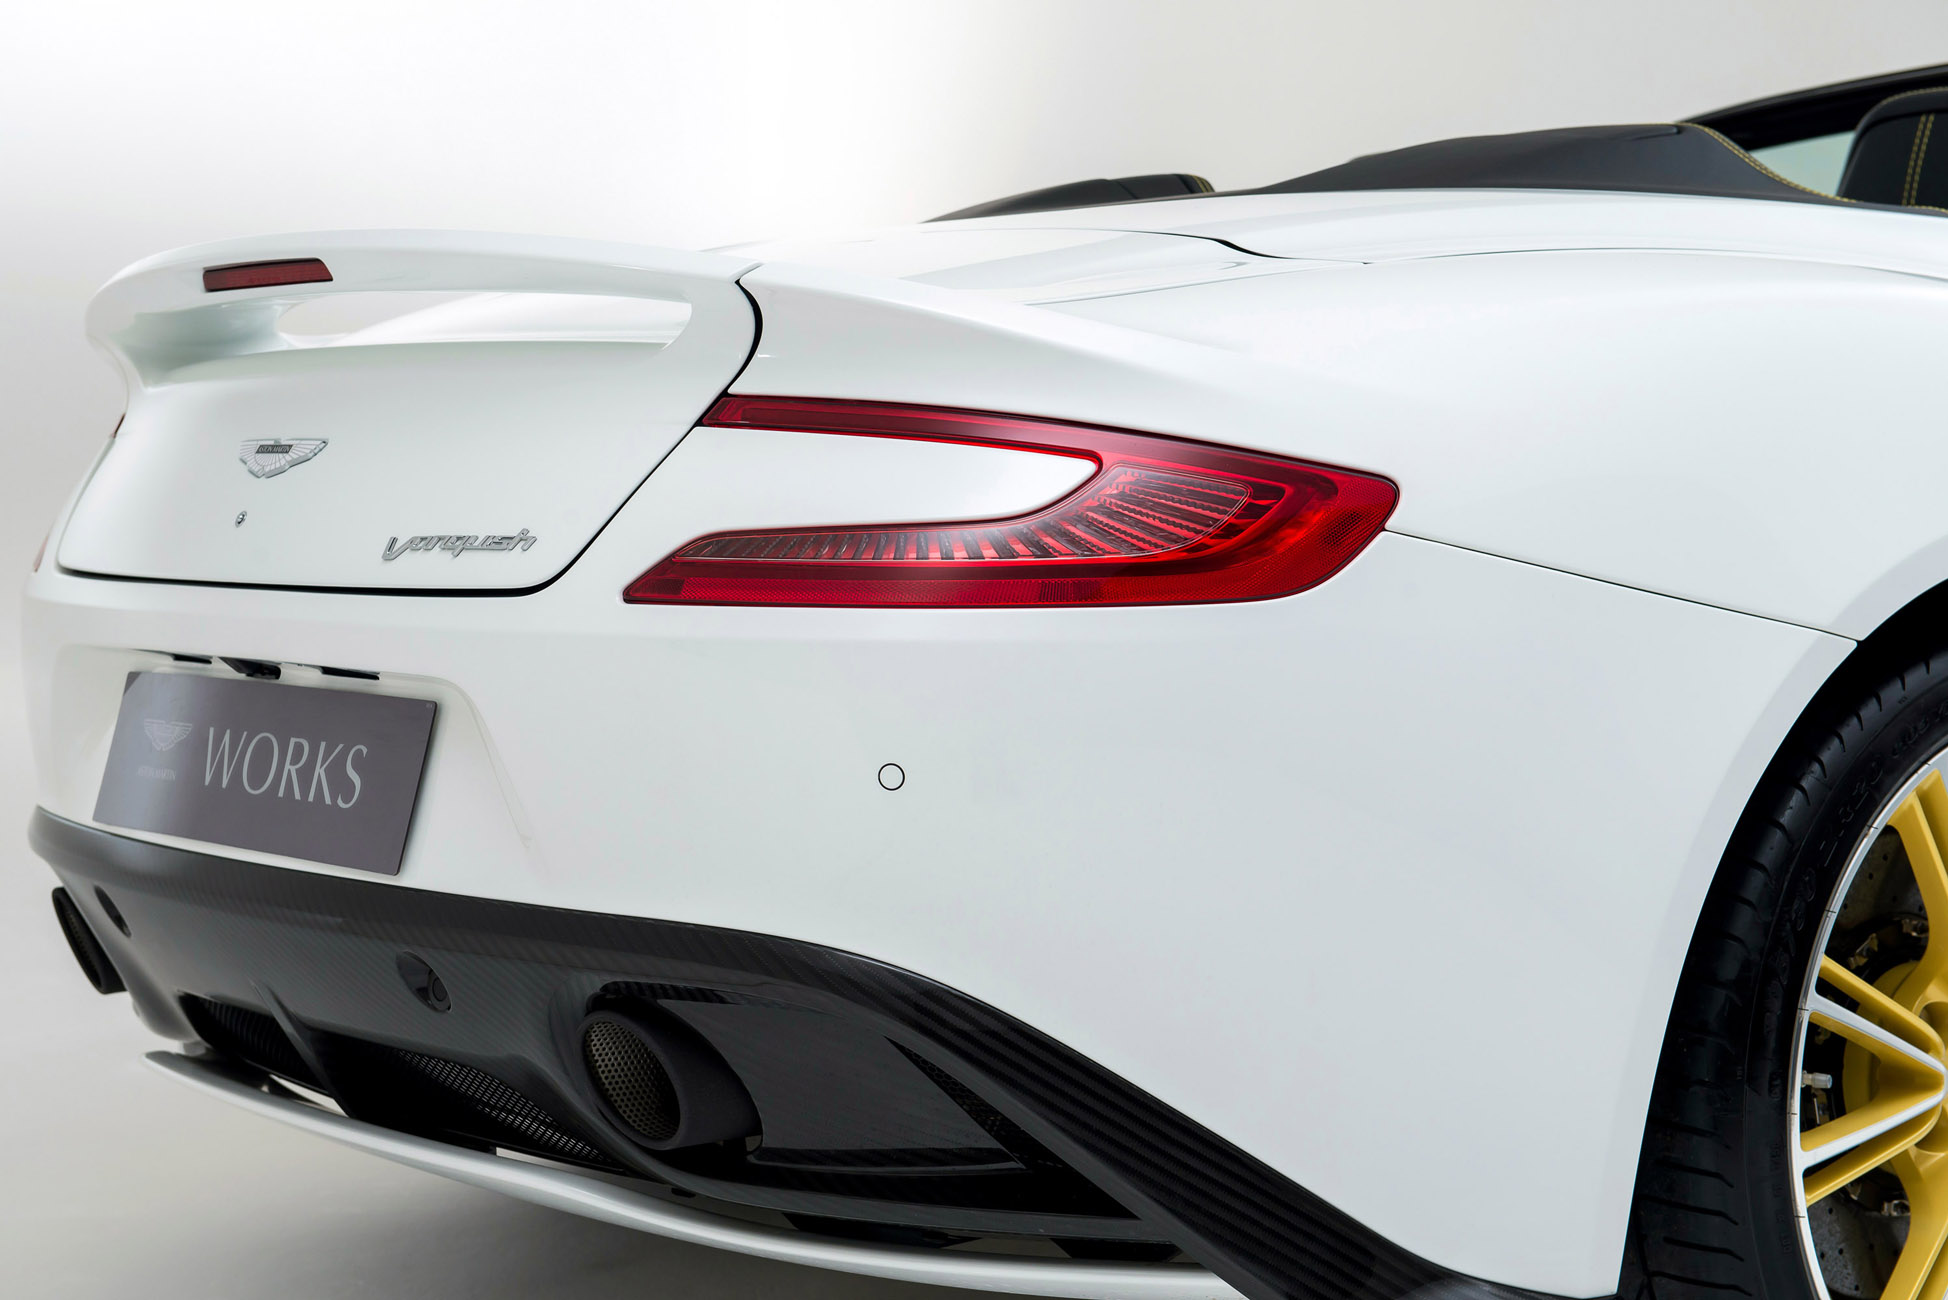 2015 Aston Martin Works 60th Anniversary Limited Edition Vanquish